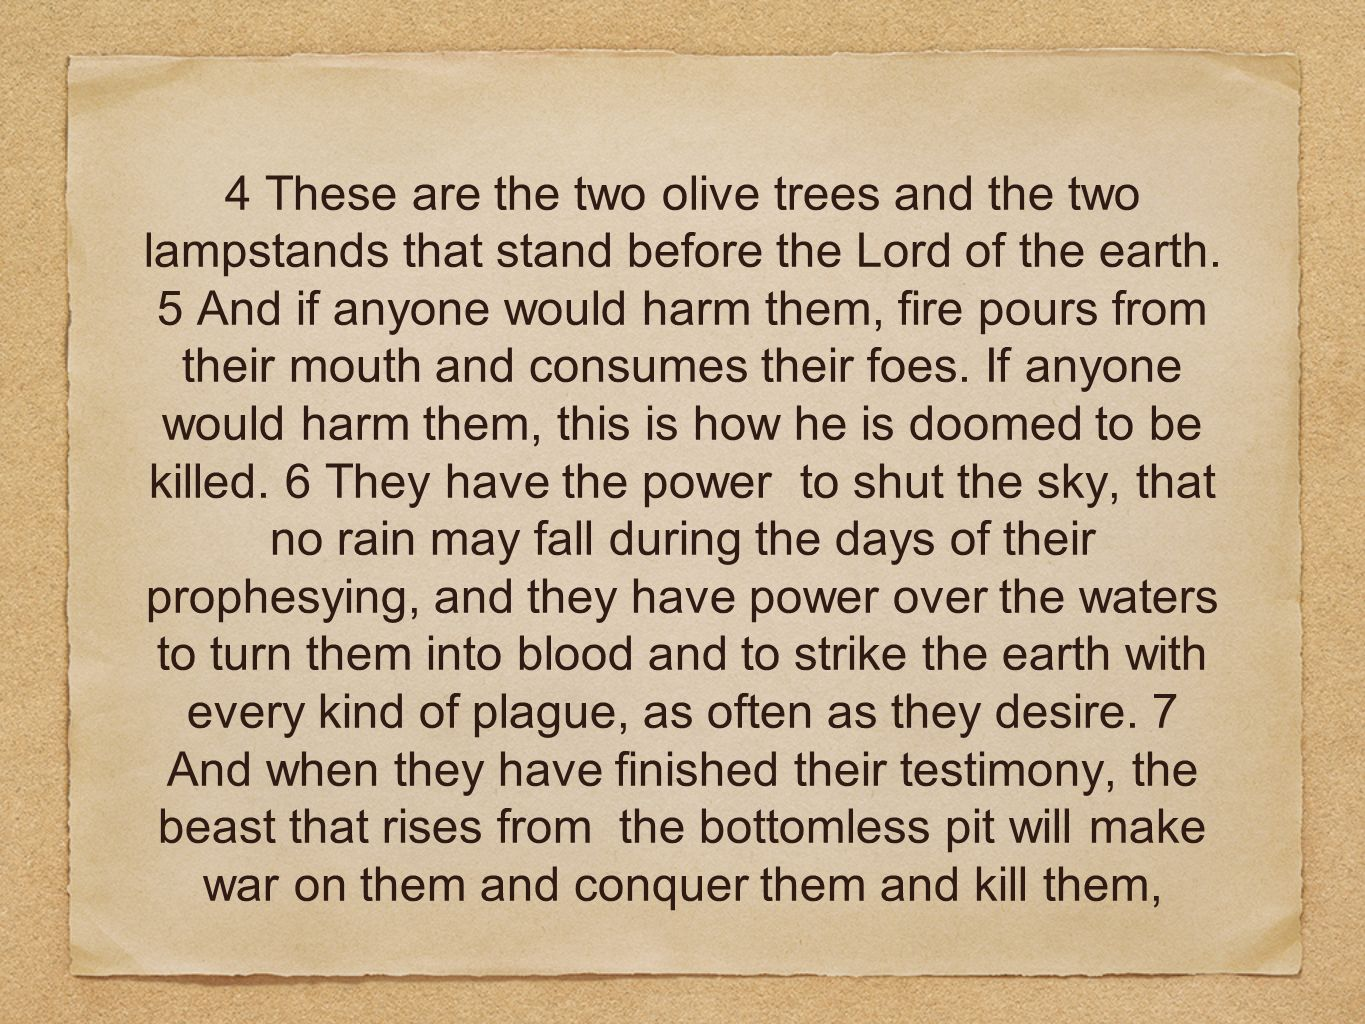 4 These are the two olive trees and the two lampstands that stand before the Lord of the earth. 5 And if anyone would harm them, fire pours from their